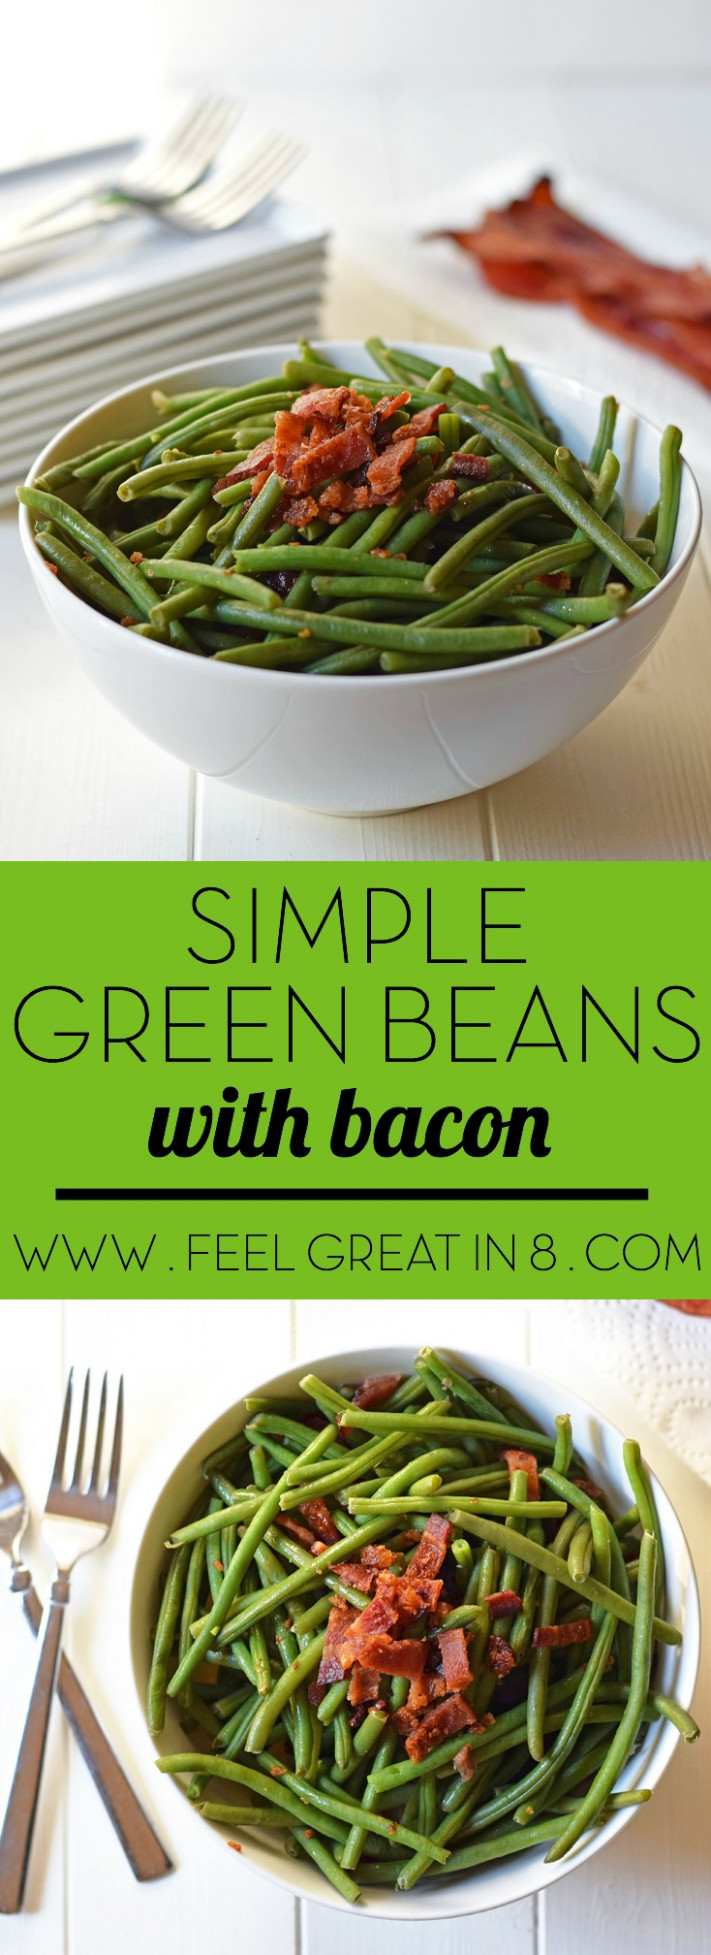 Green Beans With Bacon - recipes green beans healthy